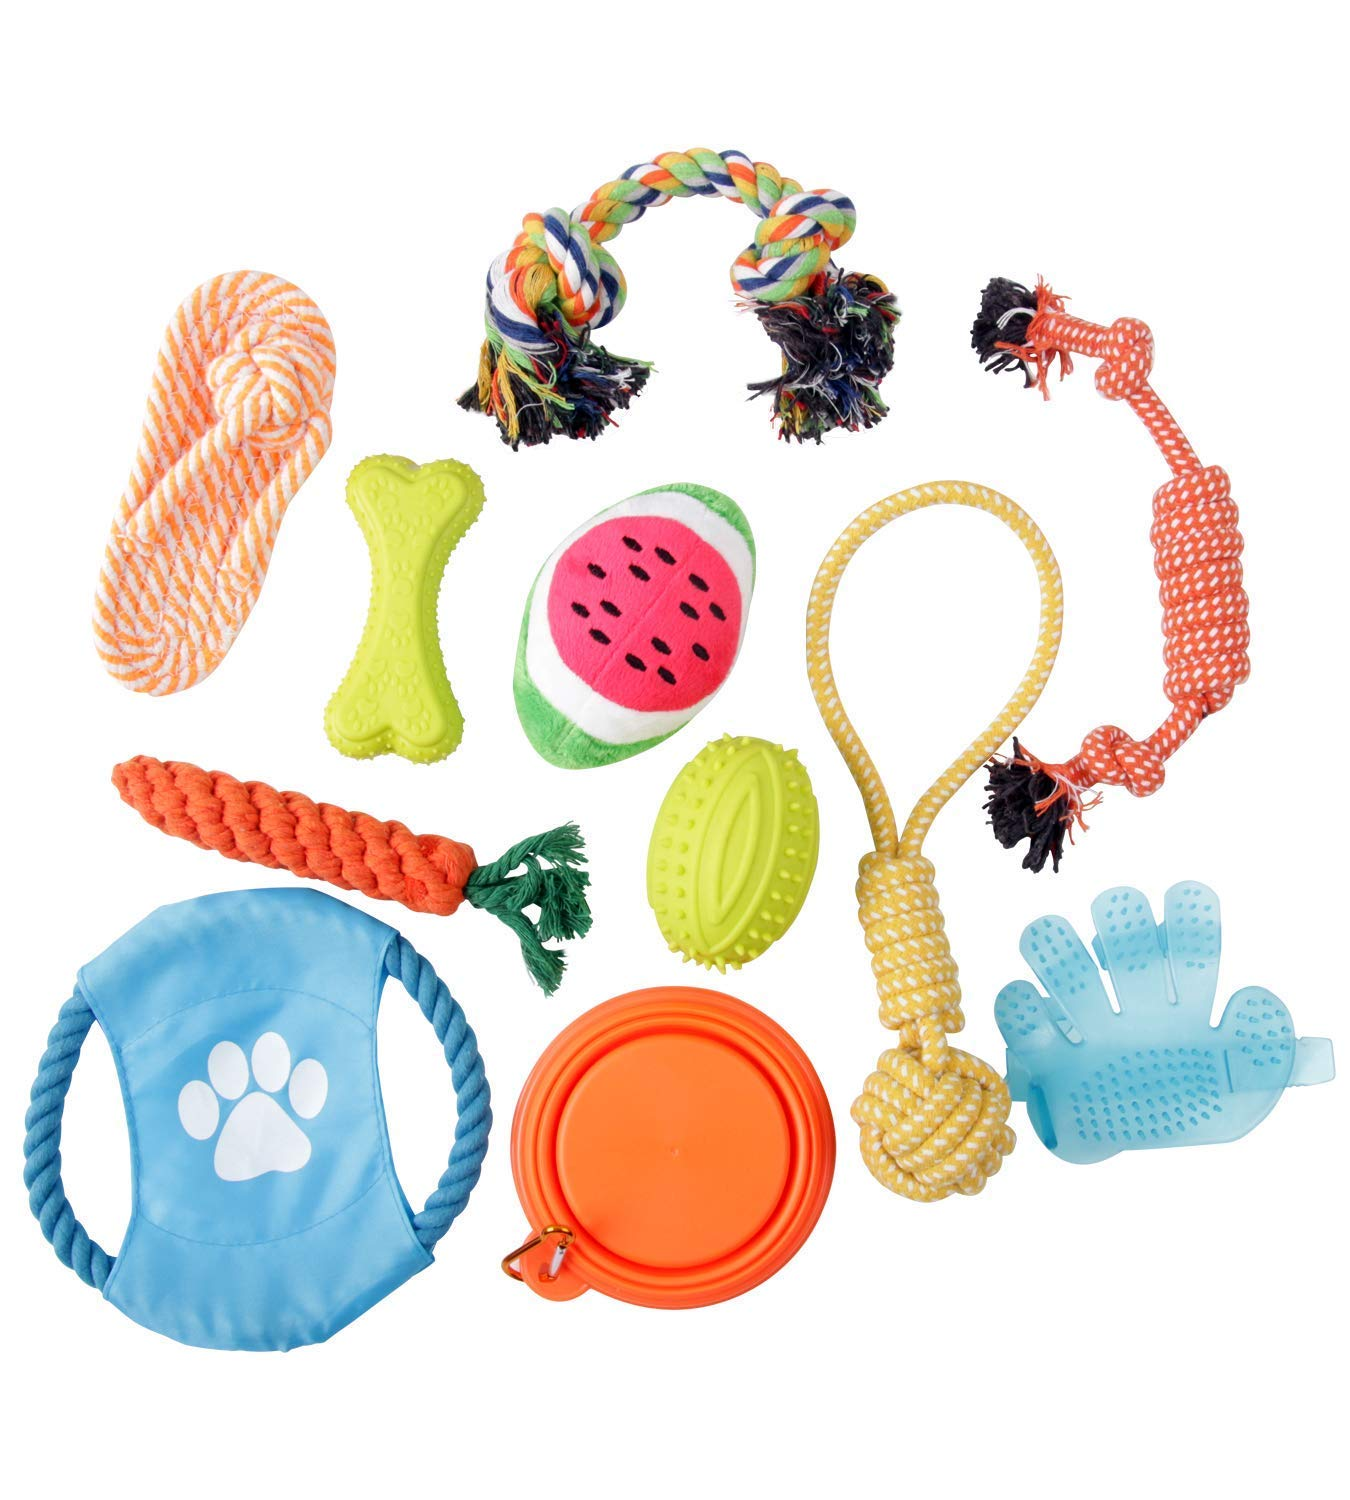 Royalwise Dog Toys Set Pet Rope Toys Value Pack Puppy Dog Cotton Chew Toy Assortment 14 Pcs for Small Medium Large Dogs